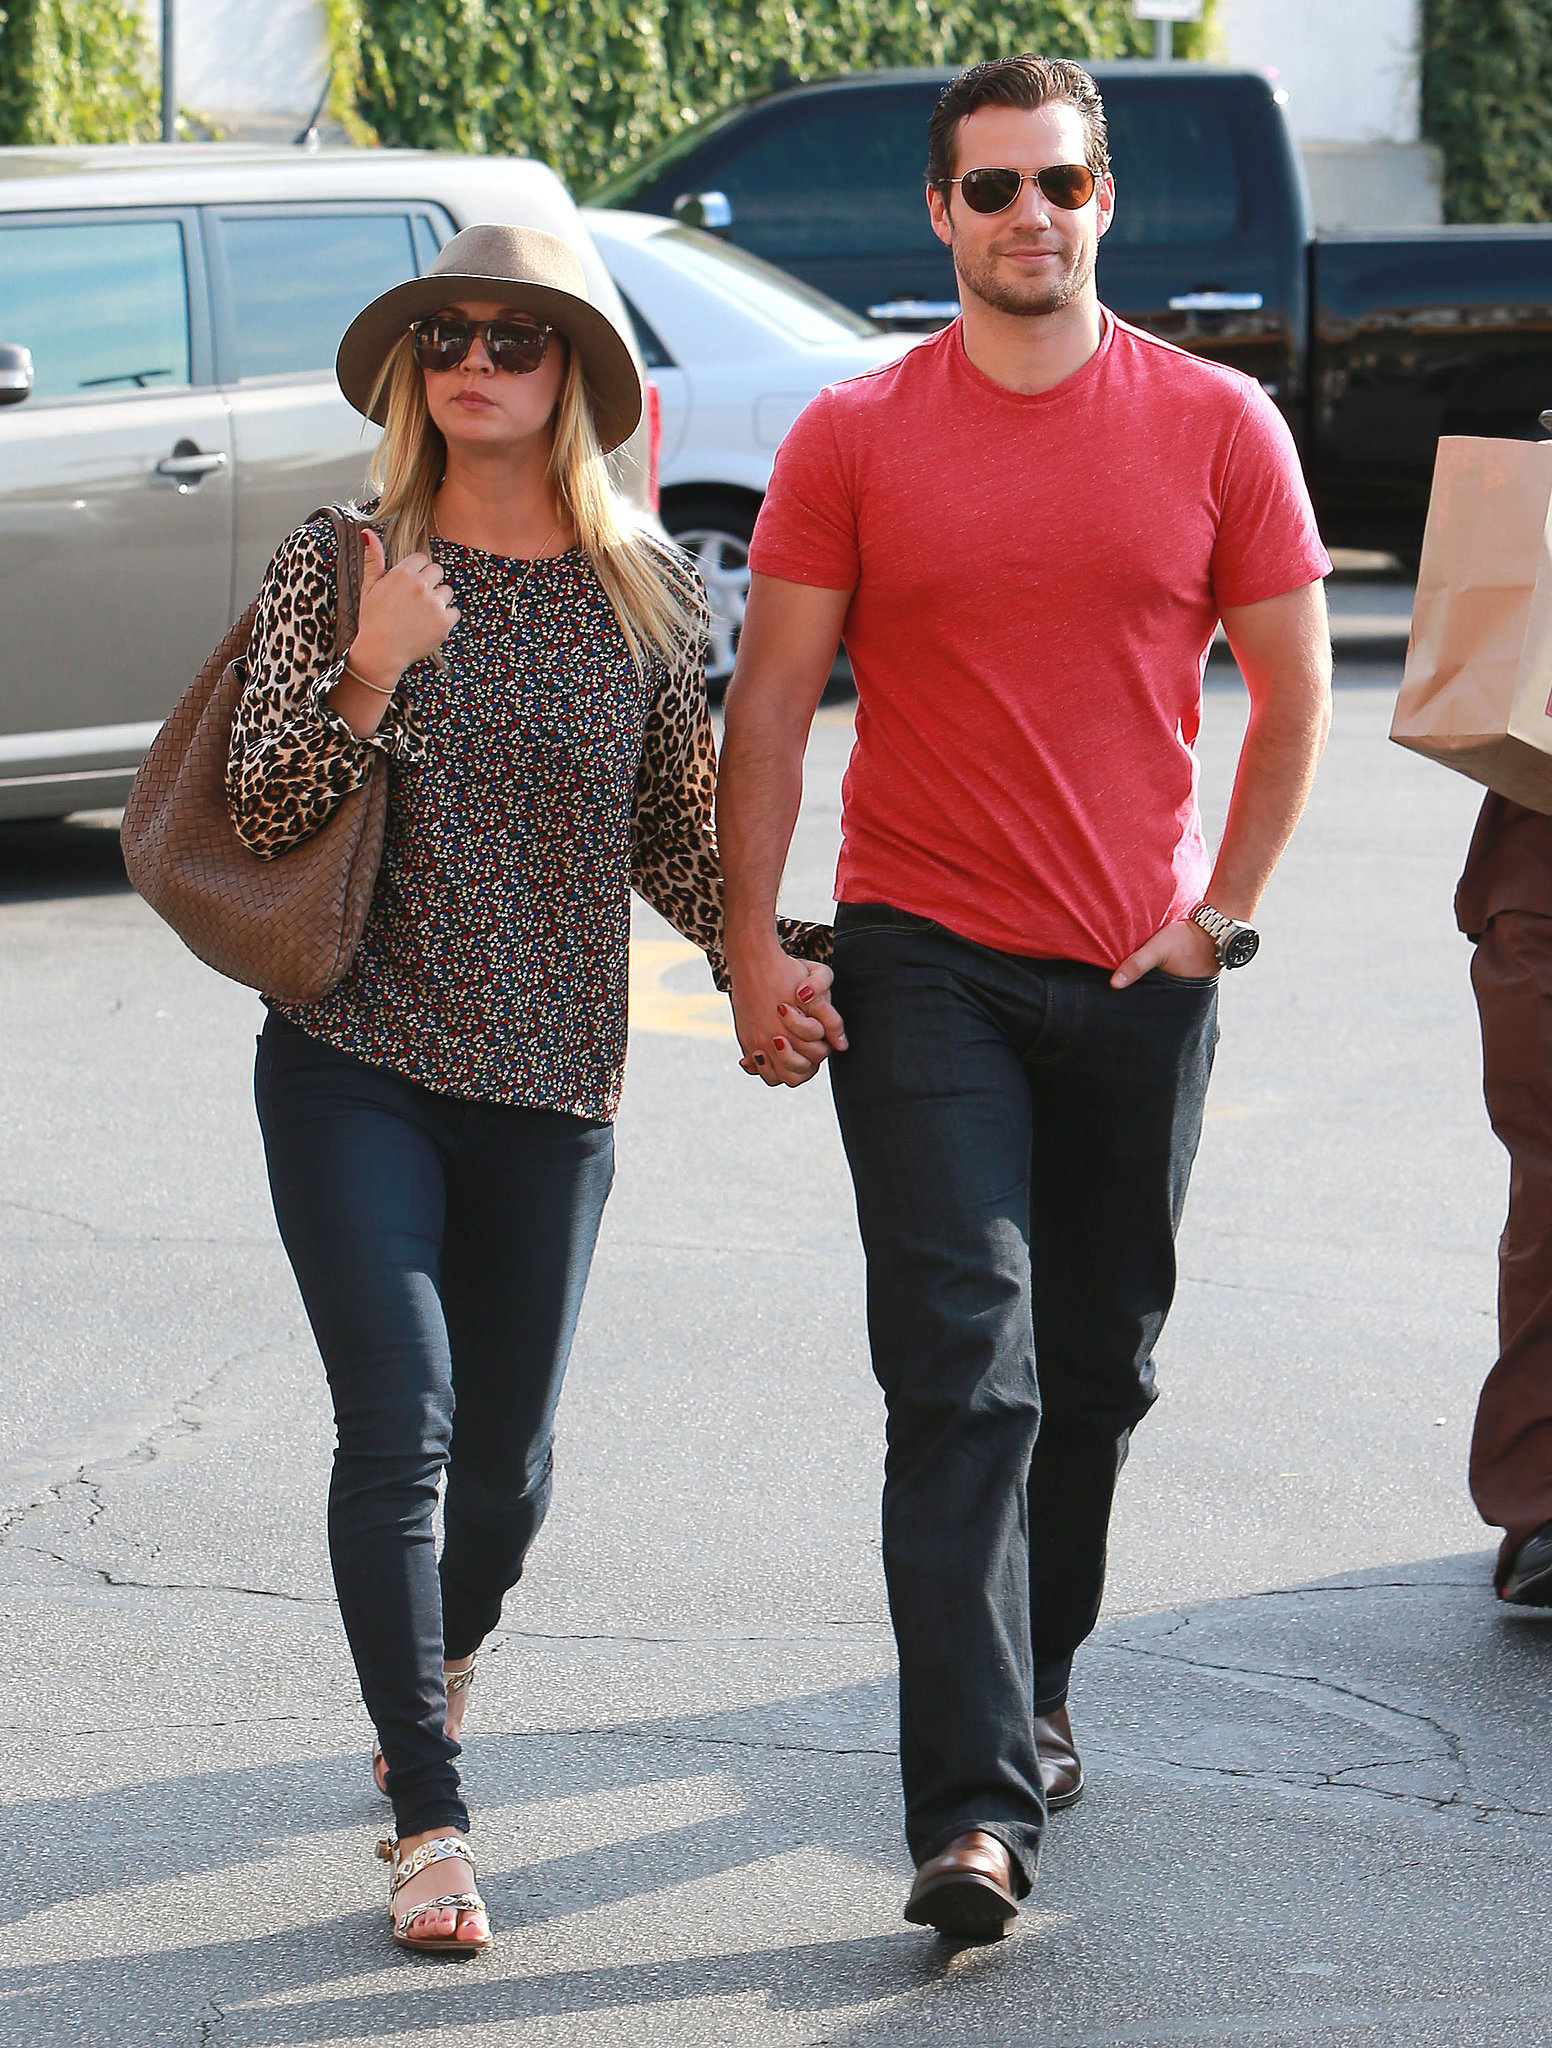 Henry Cavill And Kaley Cuoco It U0026 39 S Over The Biggest